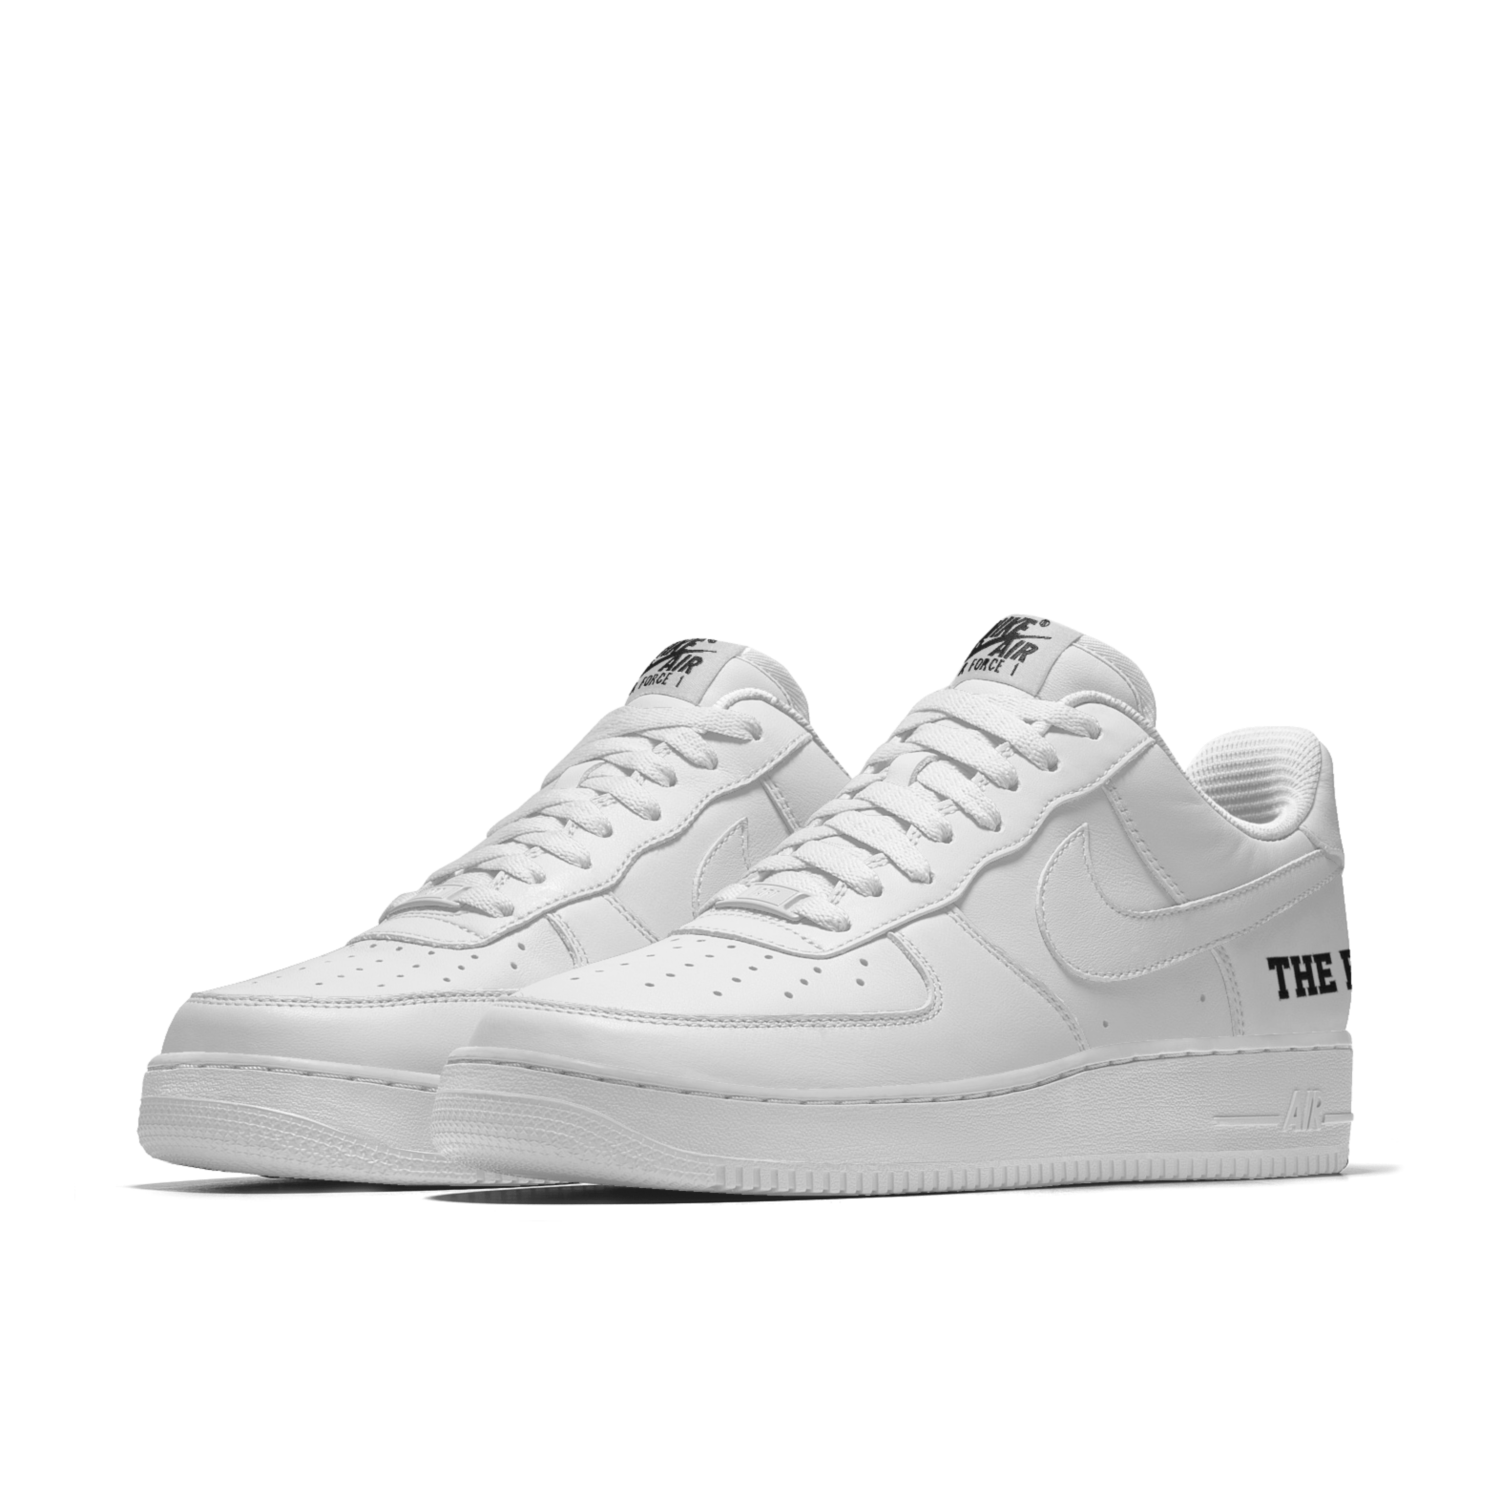 low priced 0a65f dd38b Nike Air Force 1 Low iD Women s Shoe. Nike.com